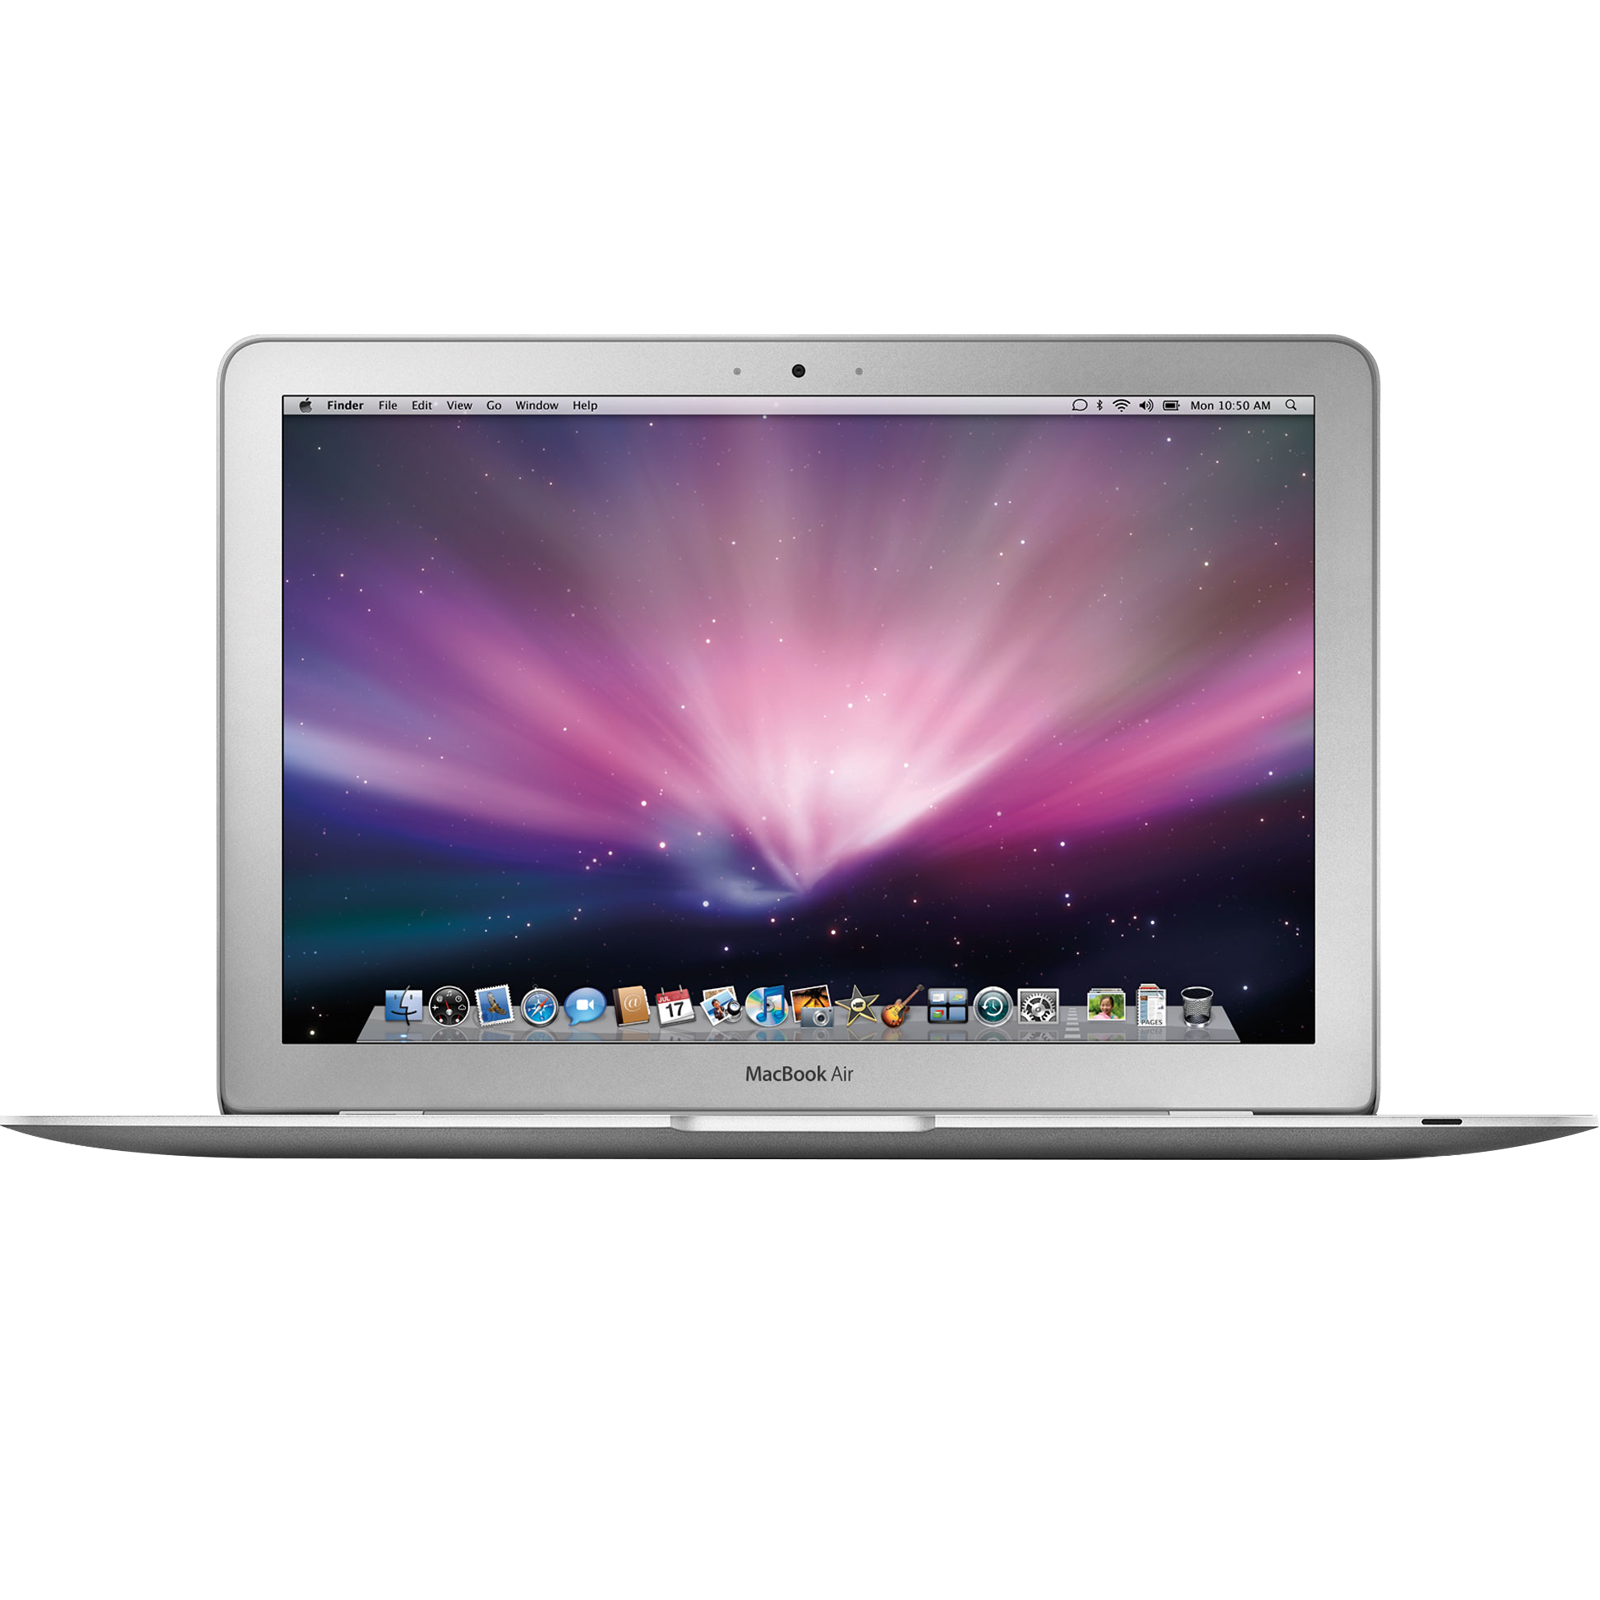 Mac air png. Macbook everything you need